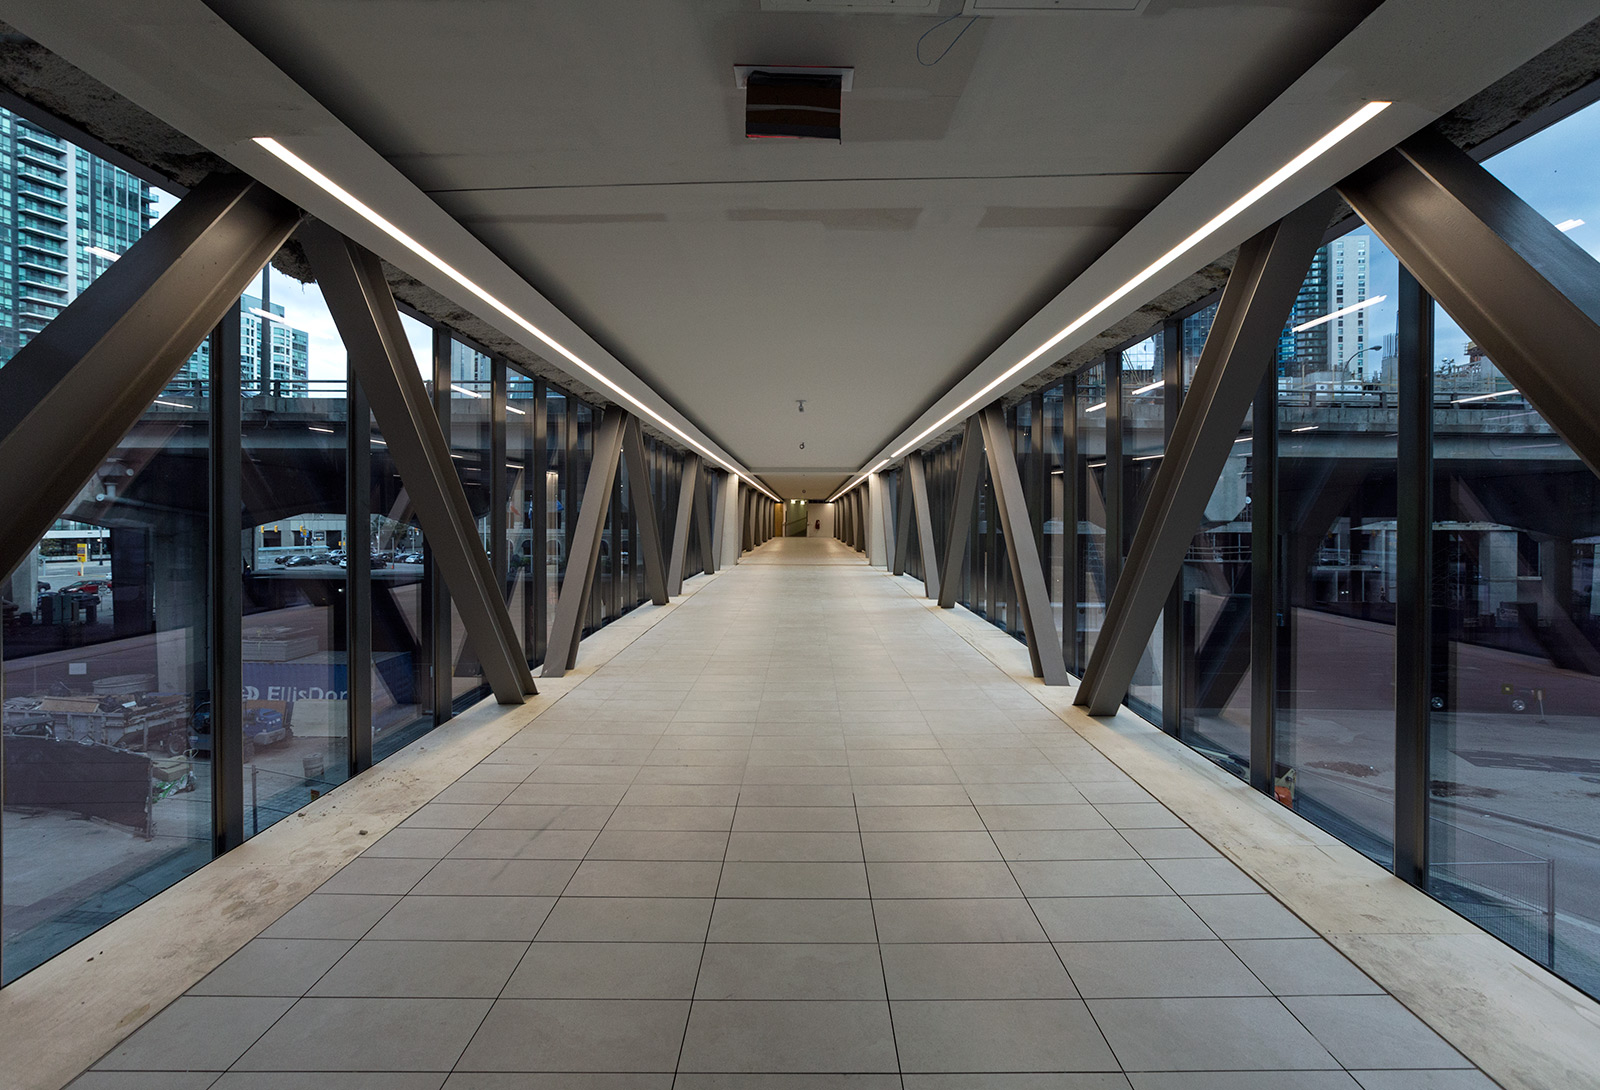 20141005. The Toronto  indoor PATH system now extends south of t